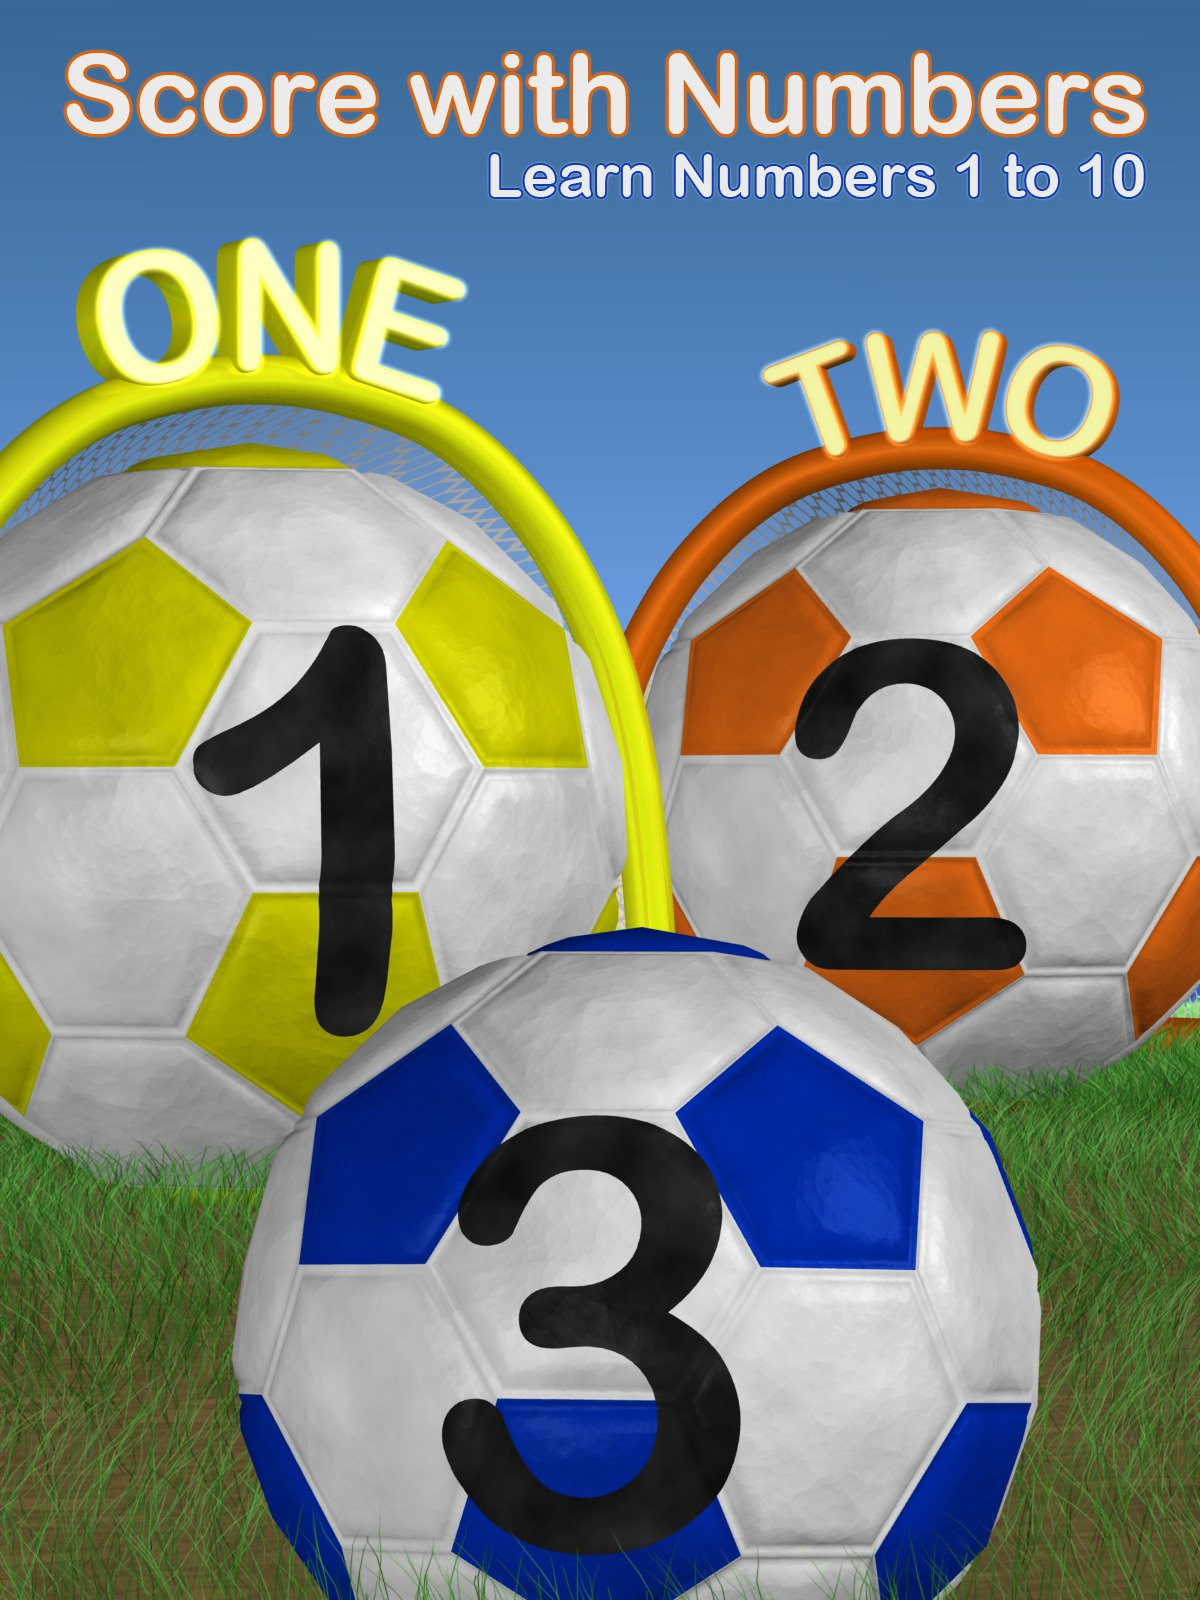 Score with Numbers